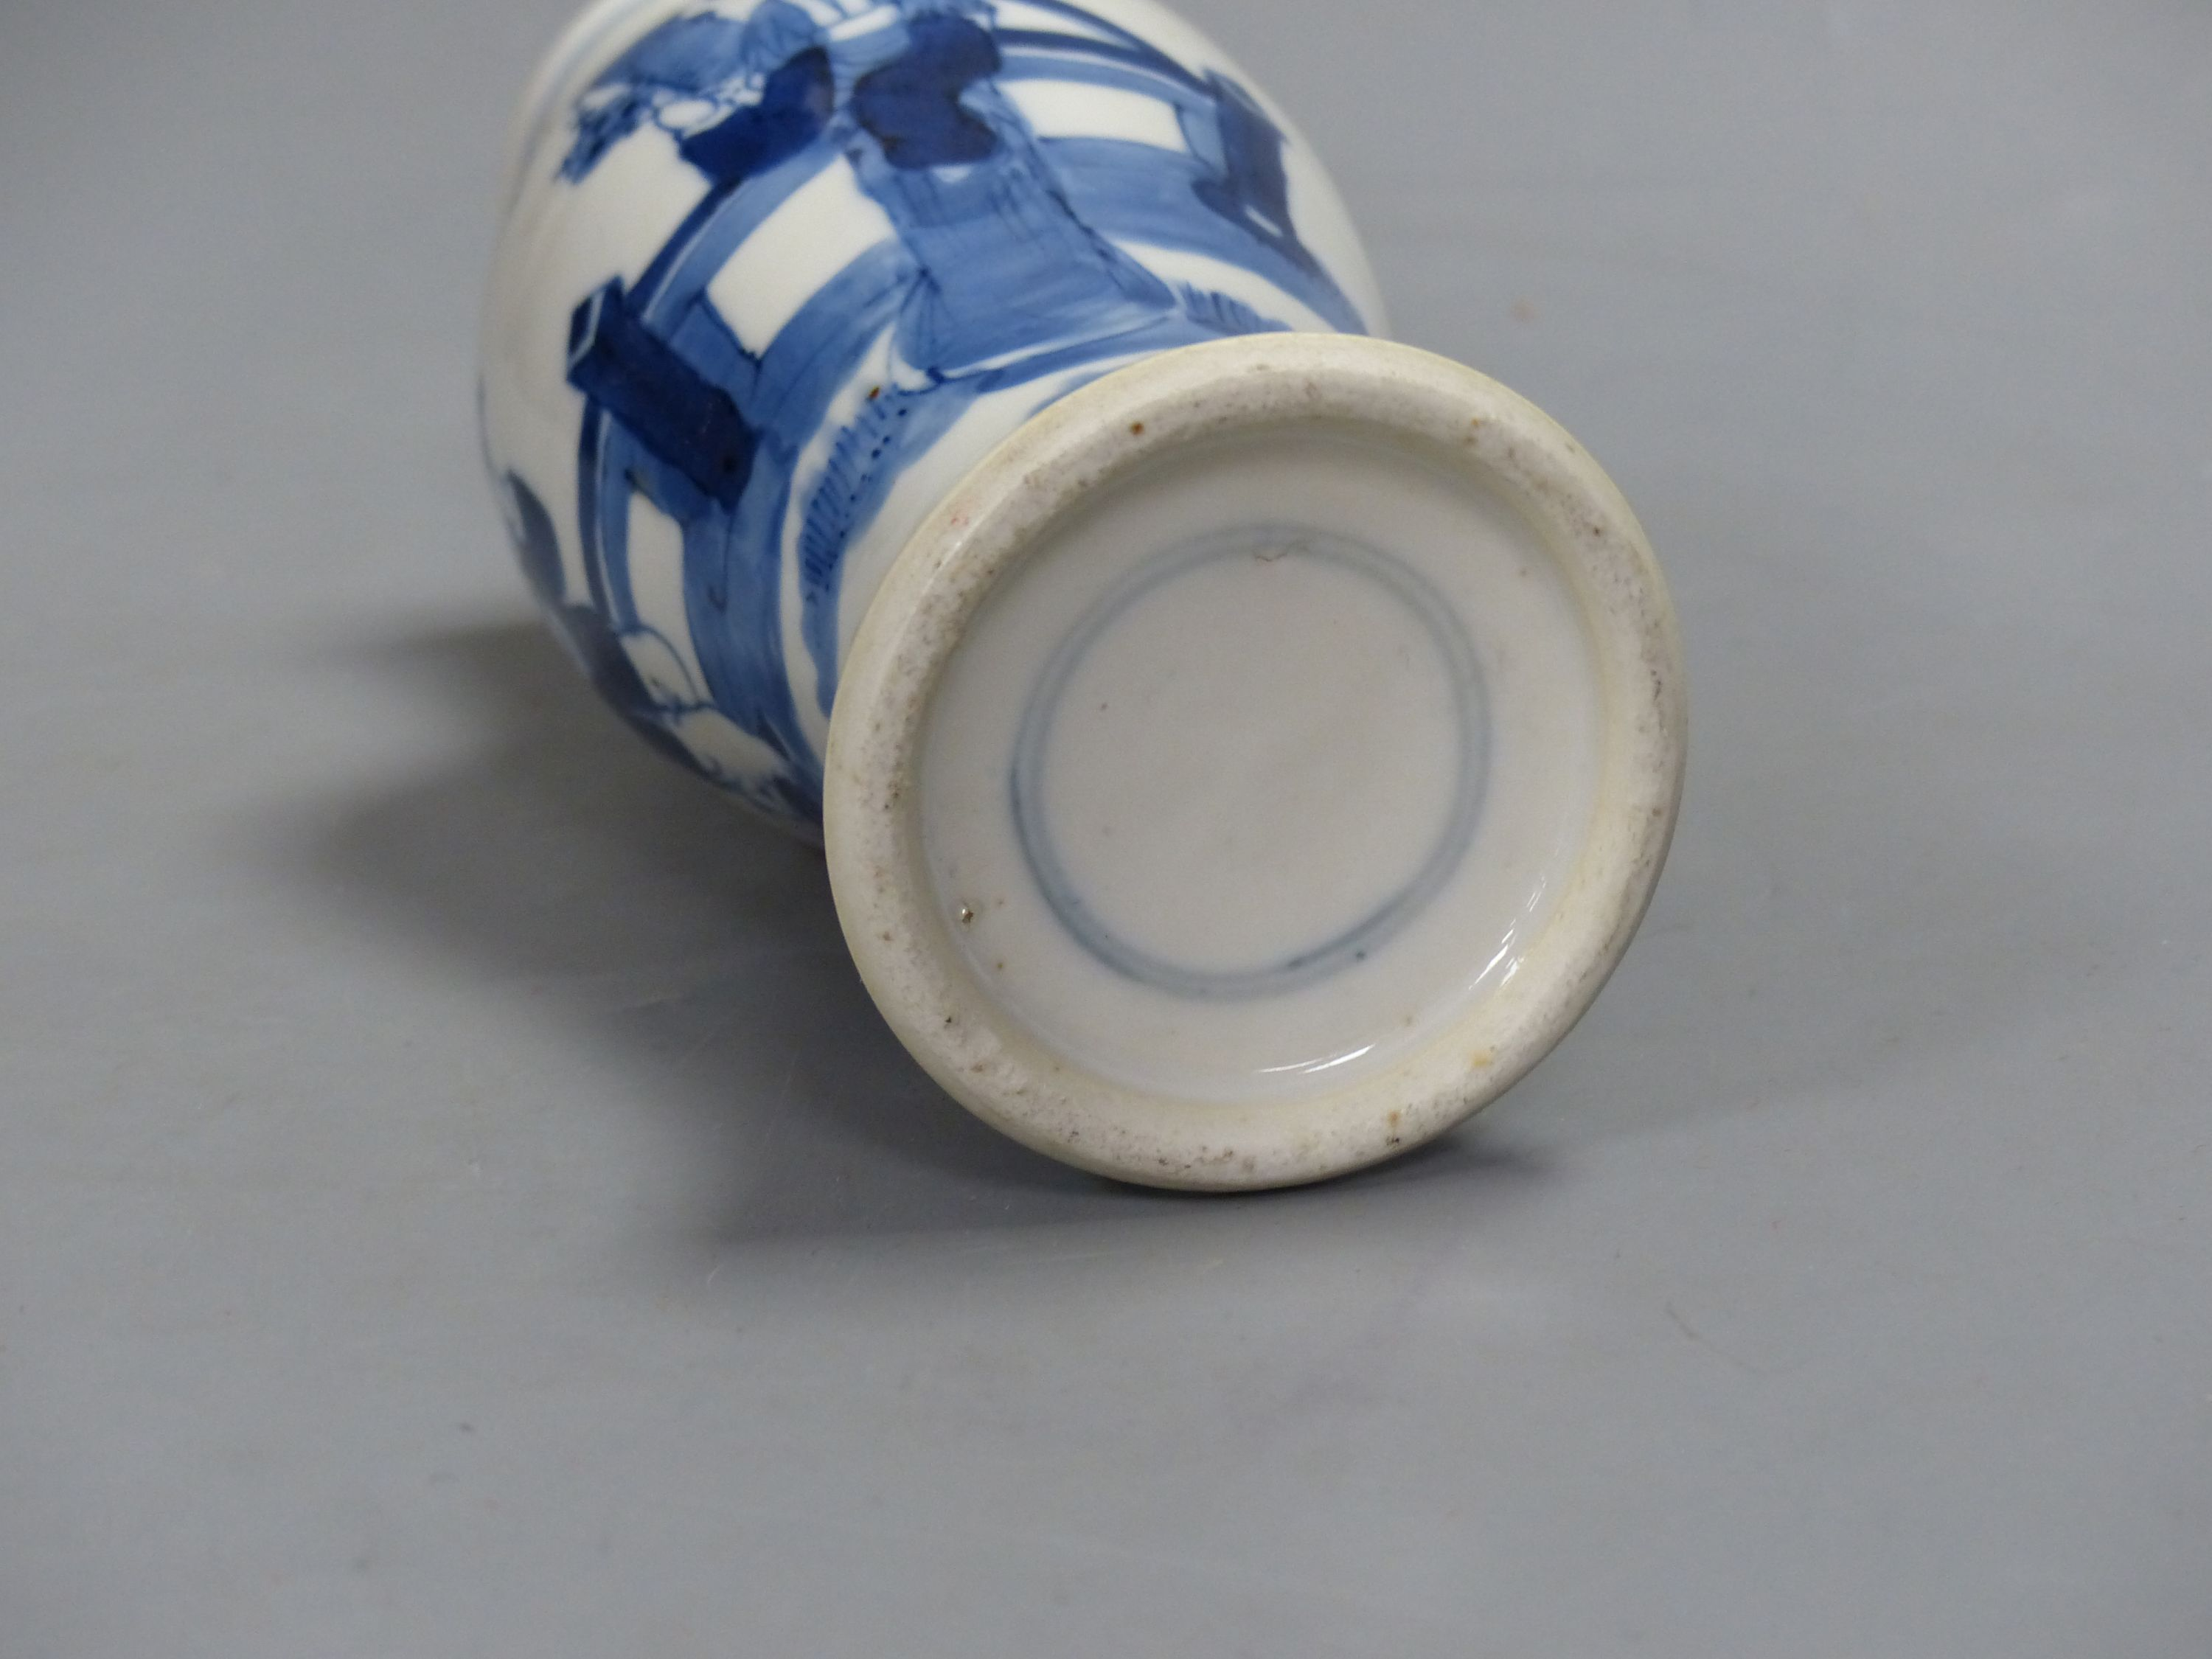 A 19th century Chinese blue and white vase, height 21cm - Image 4 of 4